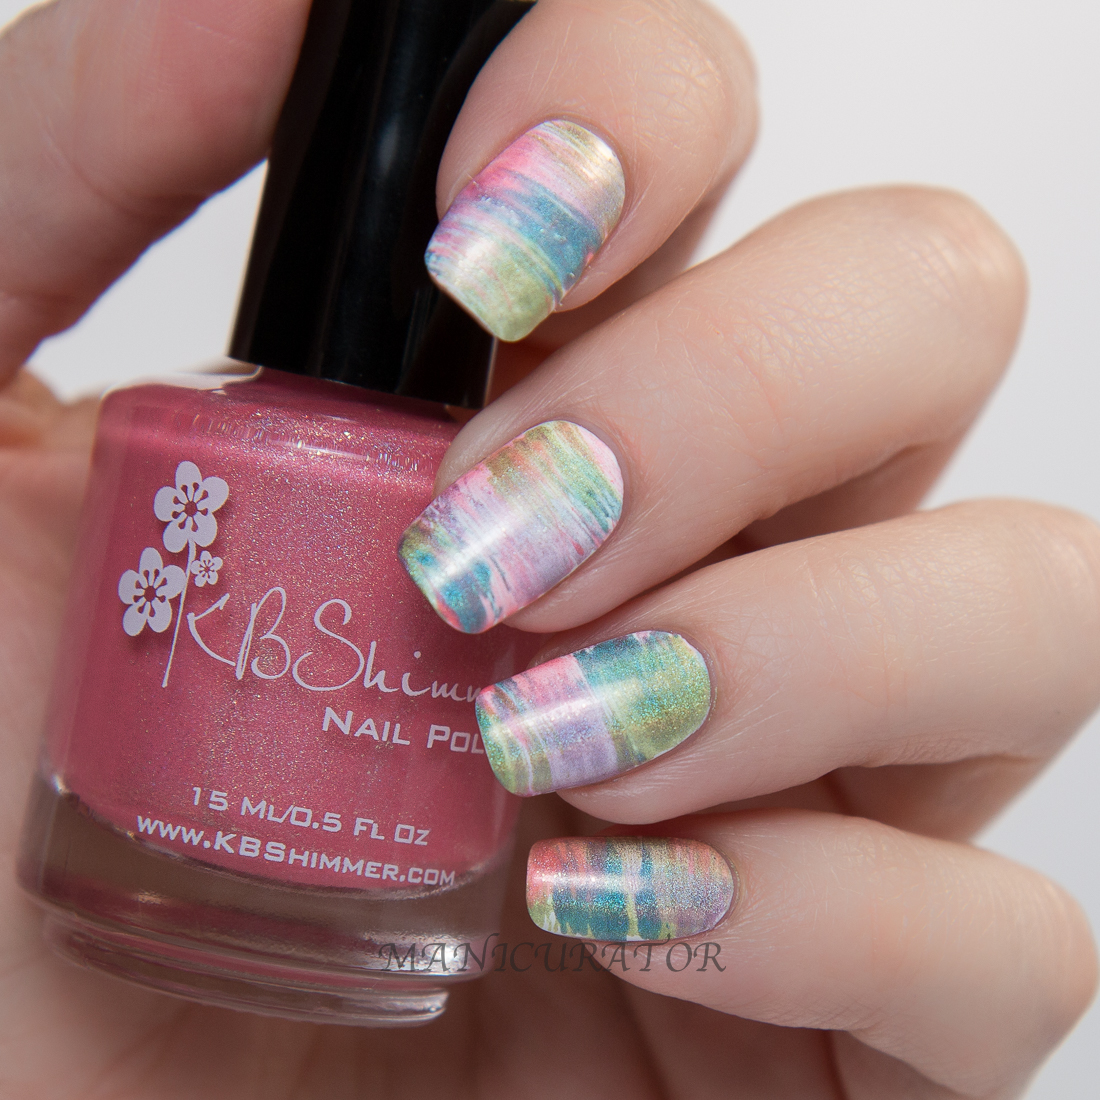 KBShimmer-Spring-To-Peach-His-Own-fan-brush-flower-nail-art